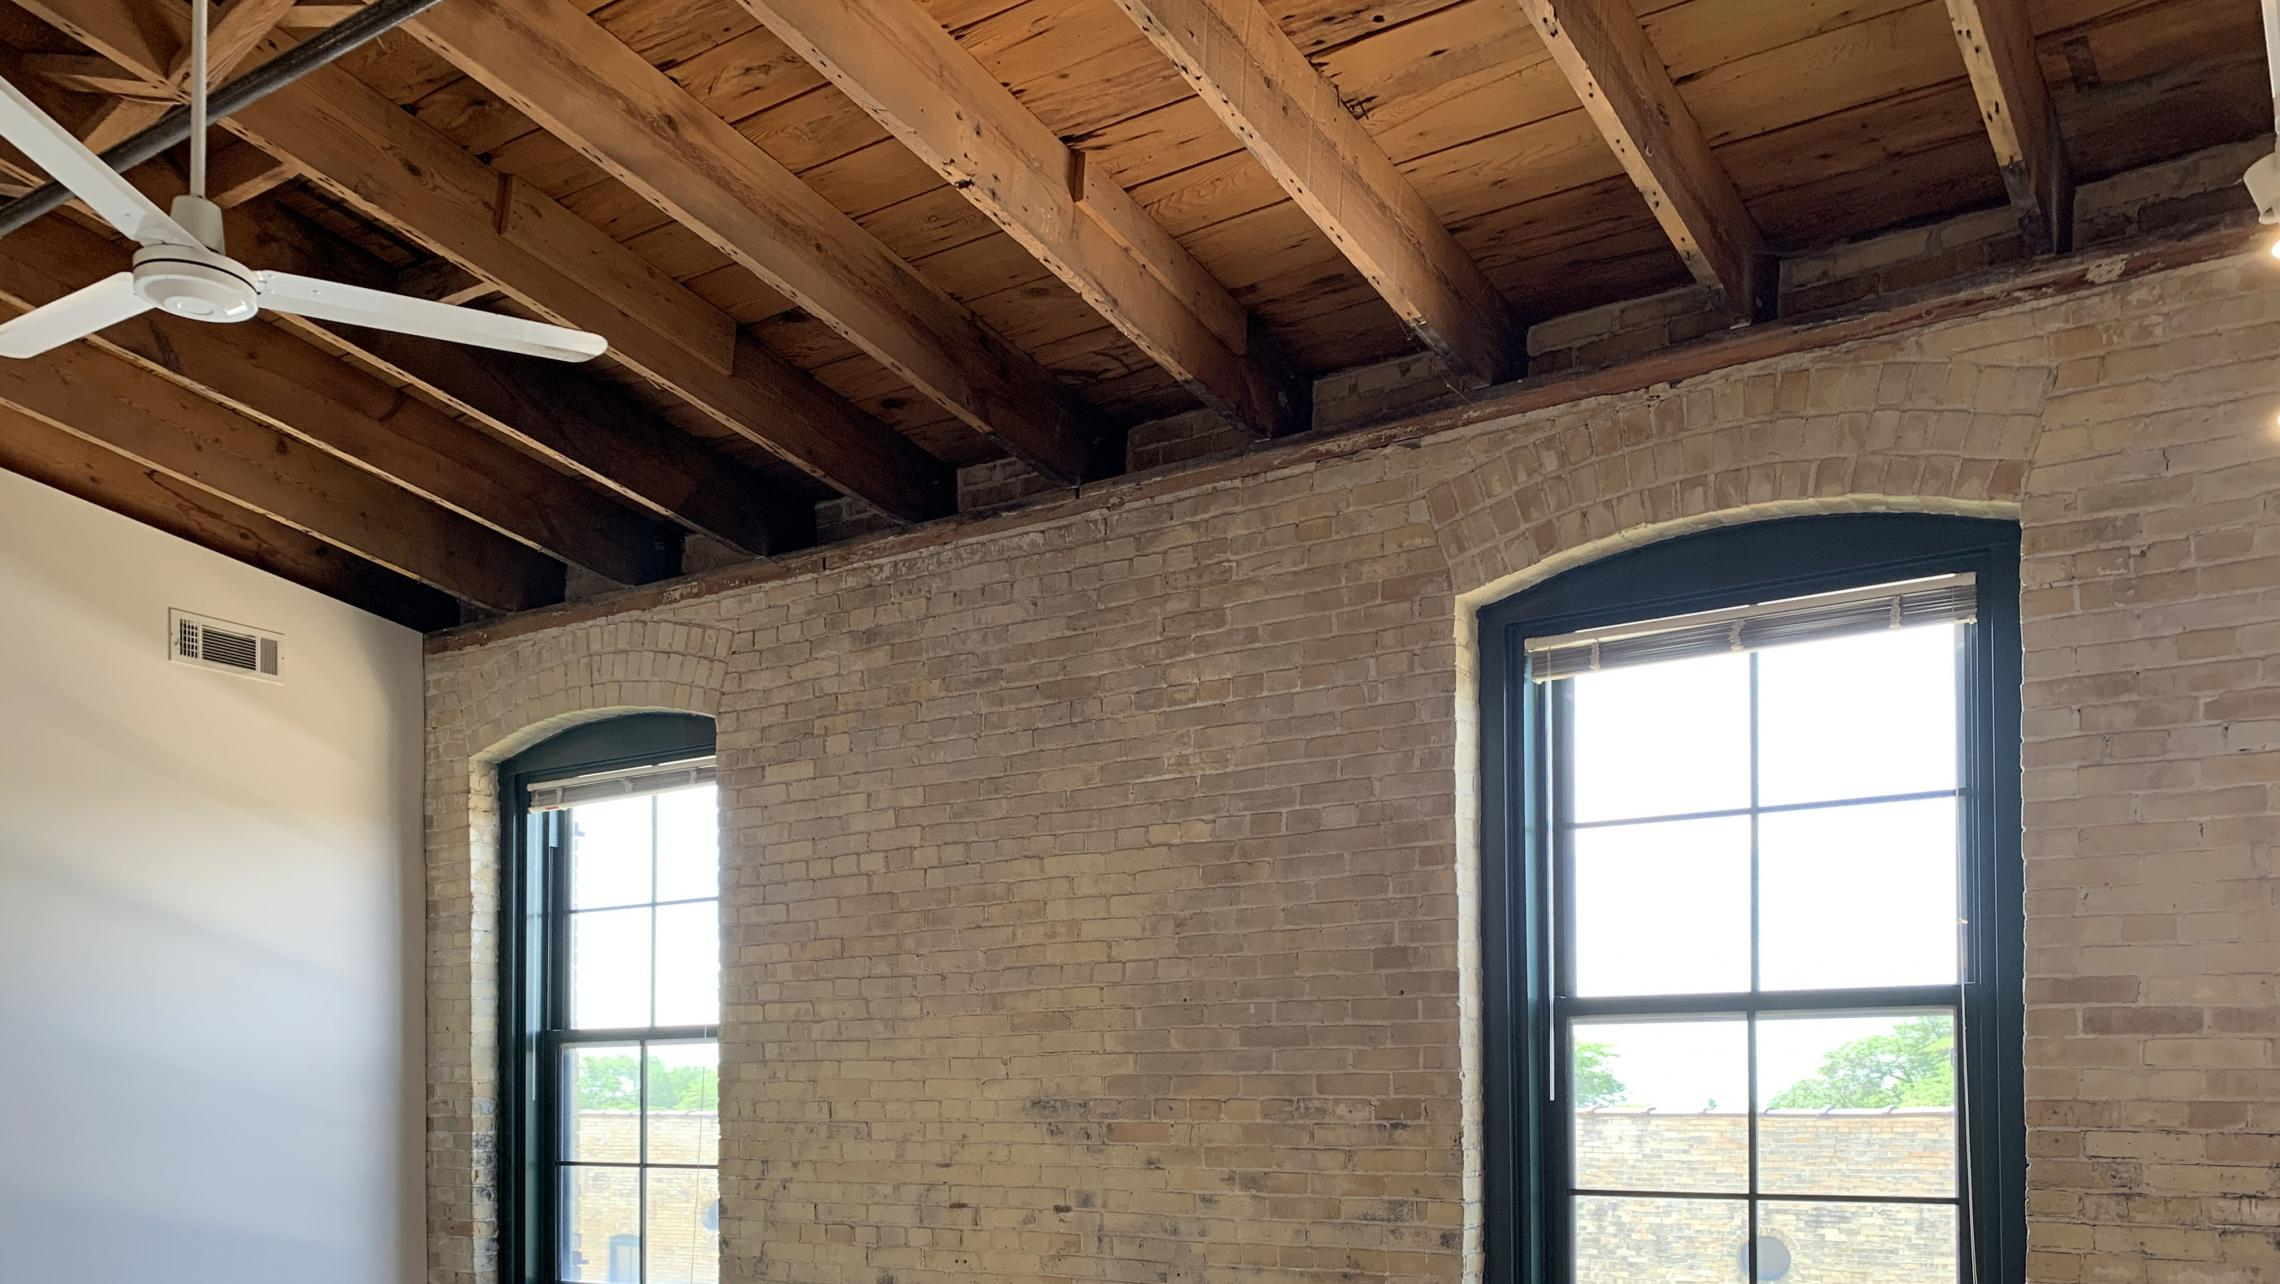 Tobacco-Lofts-at-The-Yards-Apartment-E310-One-Bedroom-Historic-Exposed-Brick-Timber-Beams-Unique-Design-Cats-High-Ceiling-Balcony-Downtown-Madison-Fitness-Lounge-Courtyard-Top-Floor-Vaulted-Ceiling